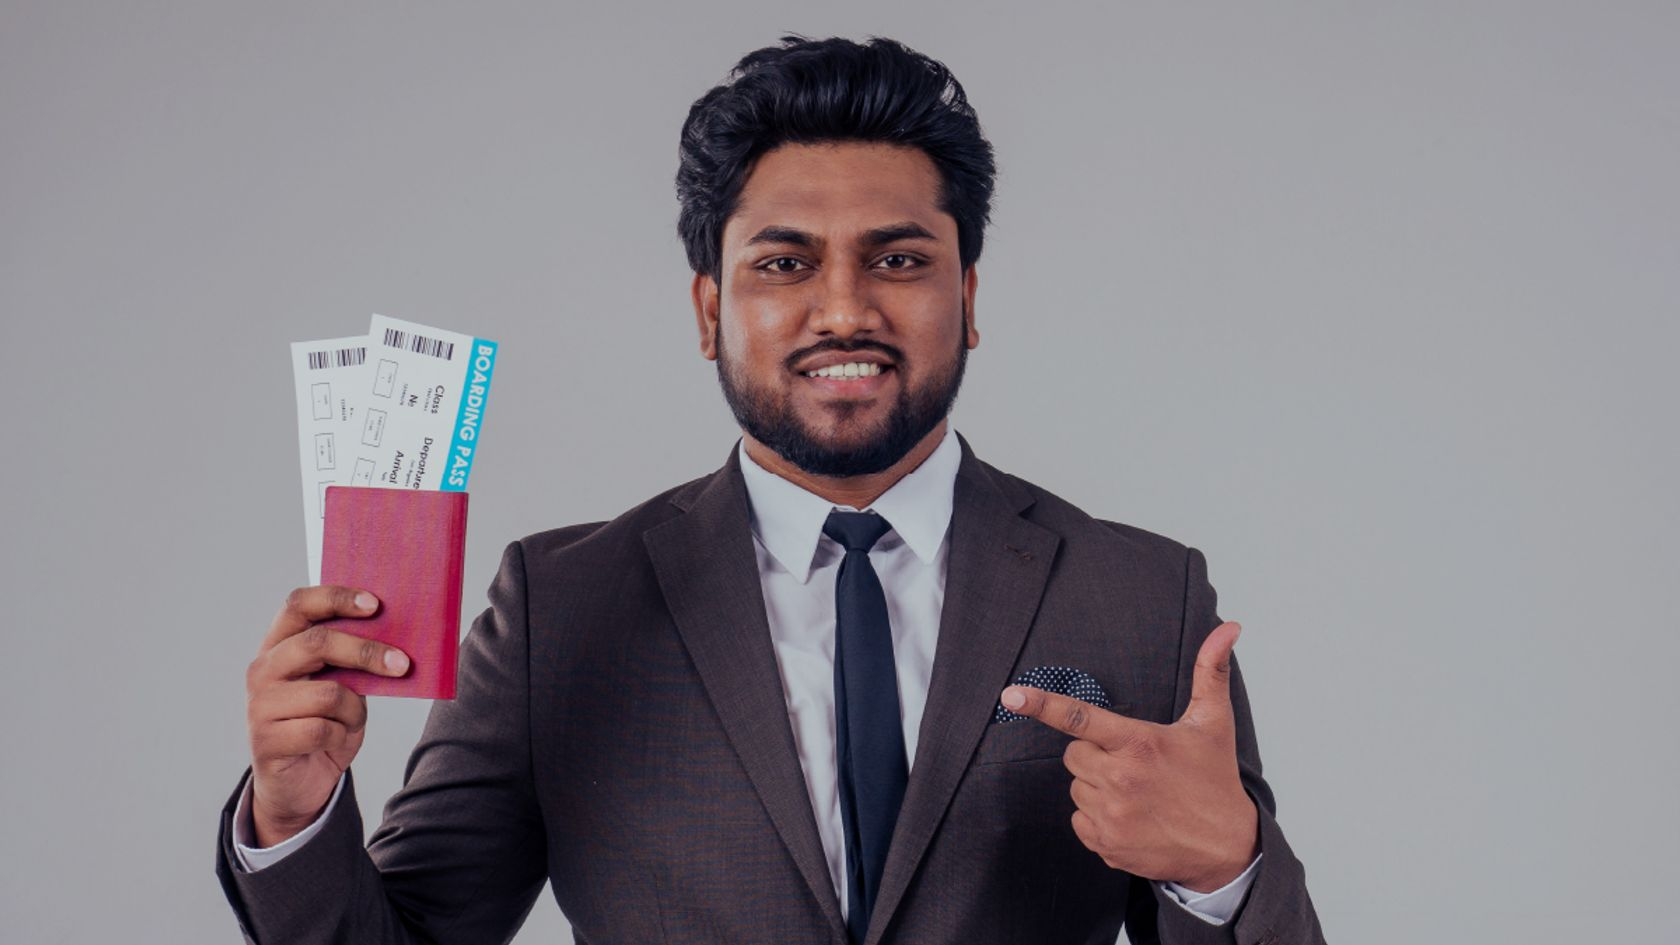 Are you looking for a brighter future abroad? Canada has launched new programs to help. Find out How to apply for Canada immigration from Afghanistan.